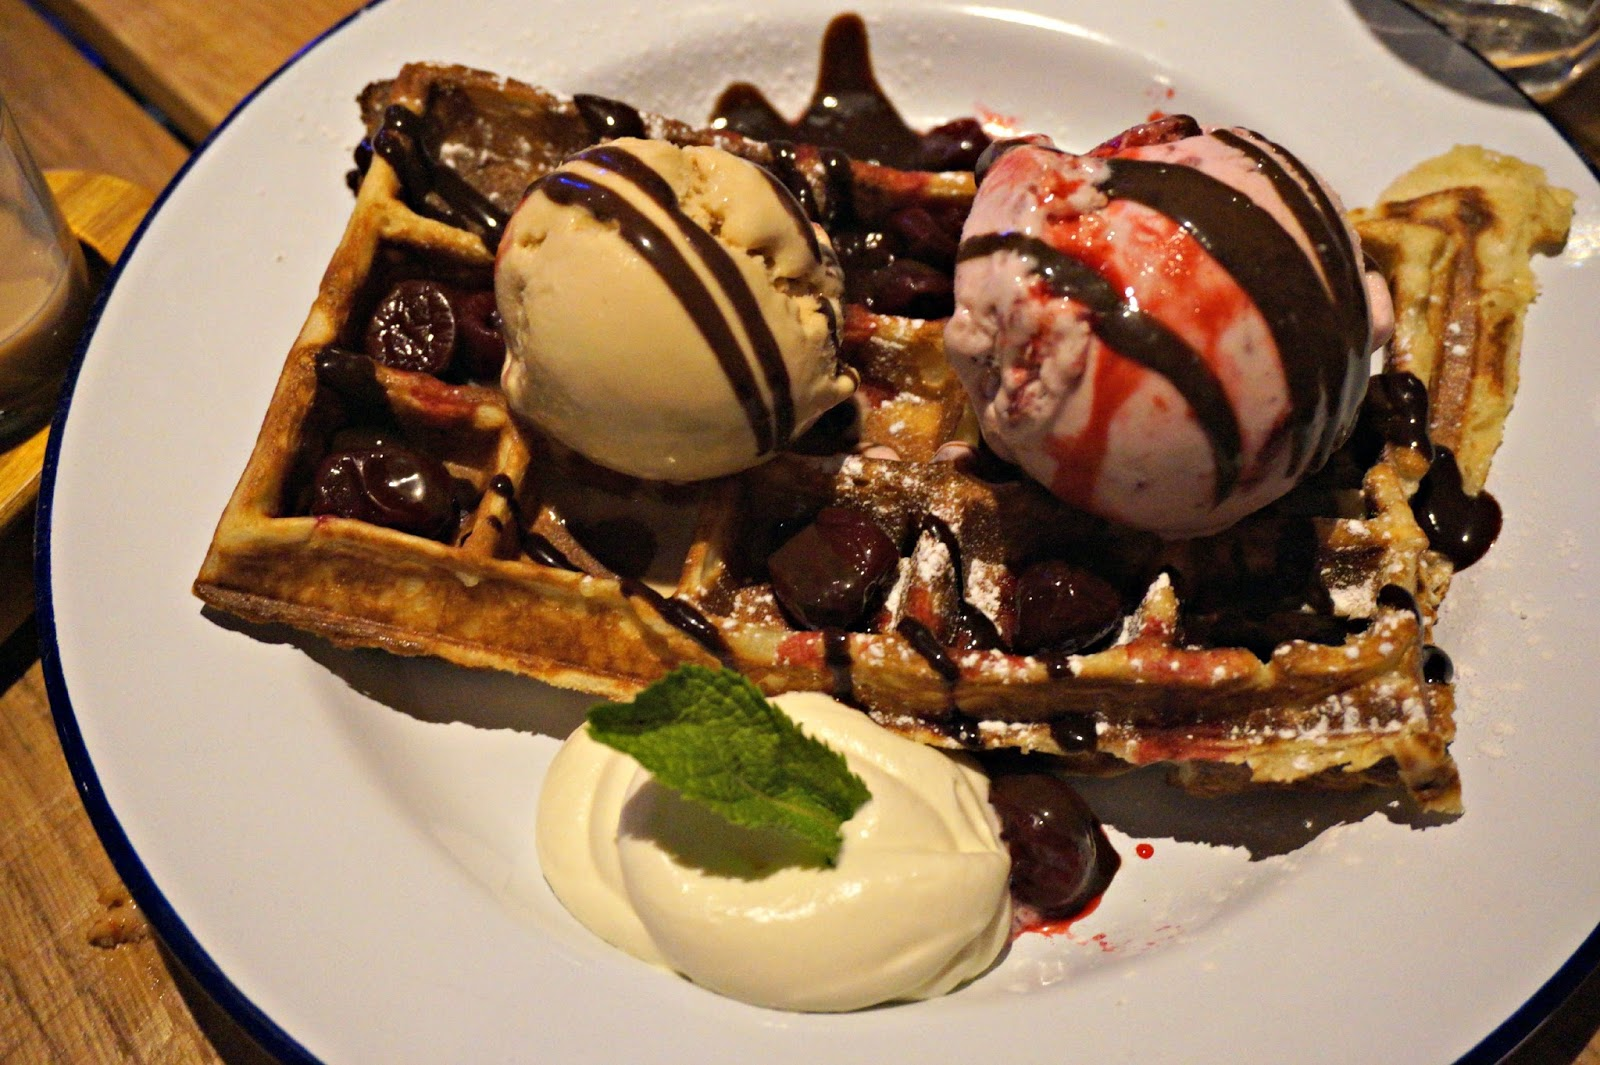 waffles with ice cream and berries